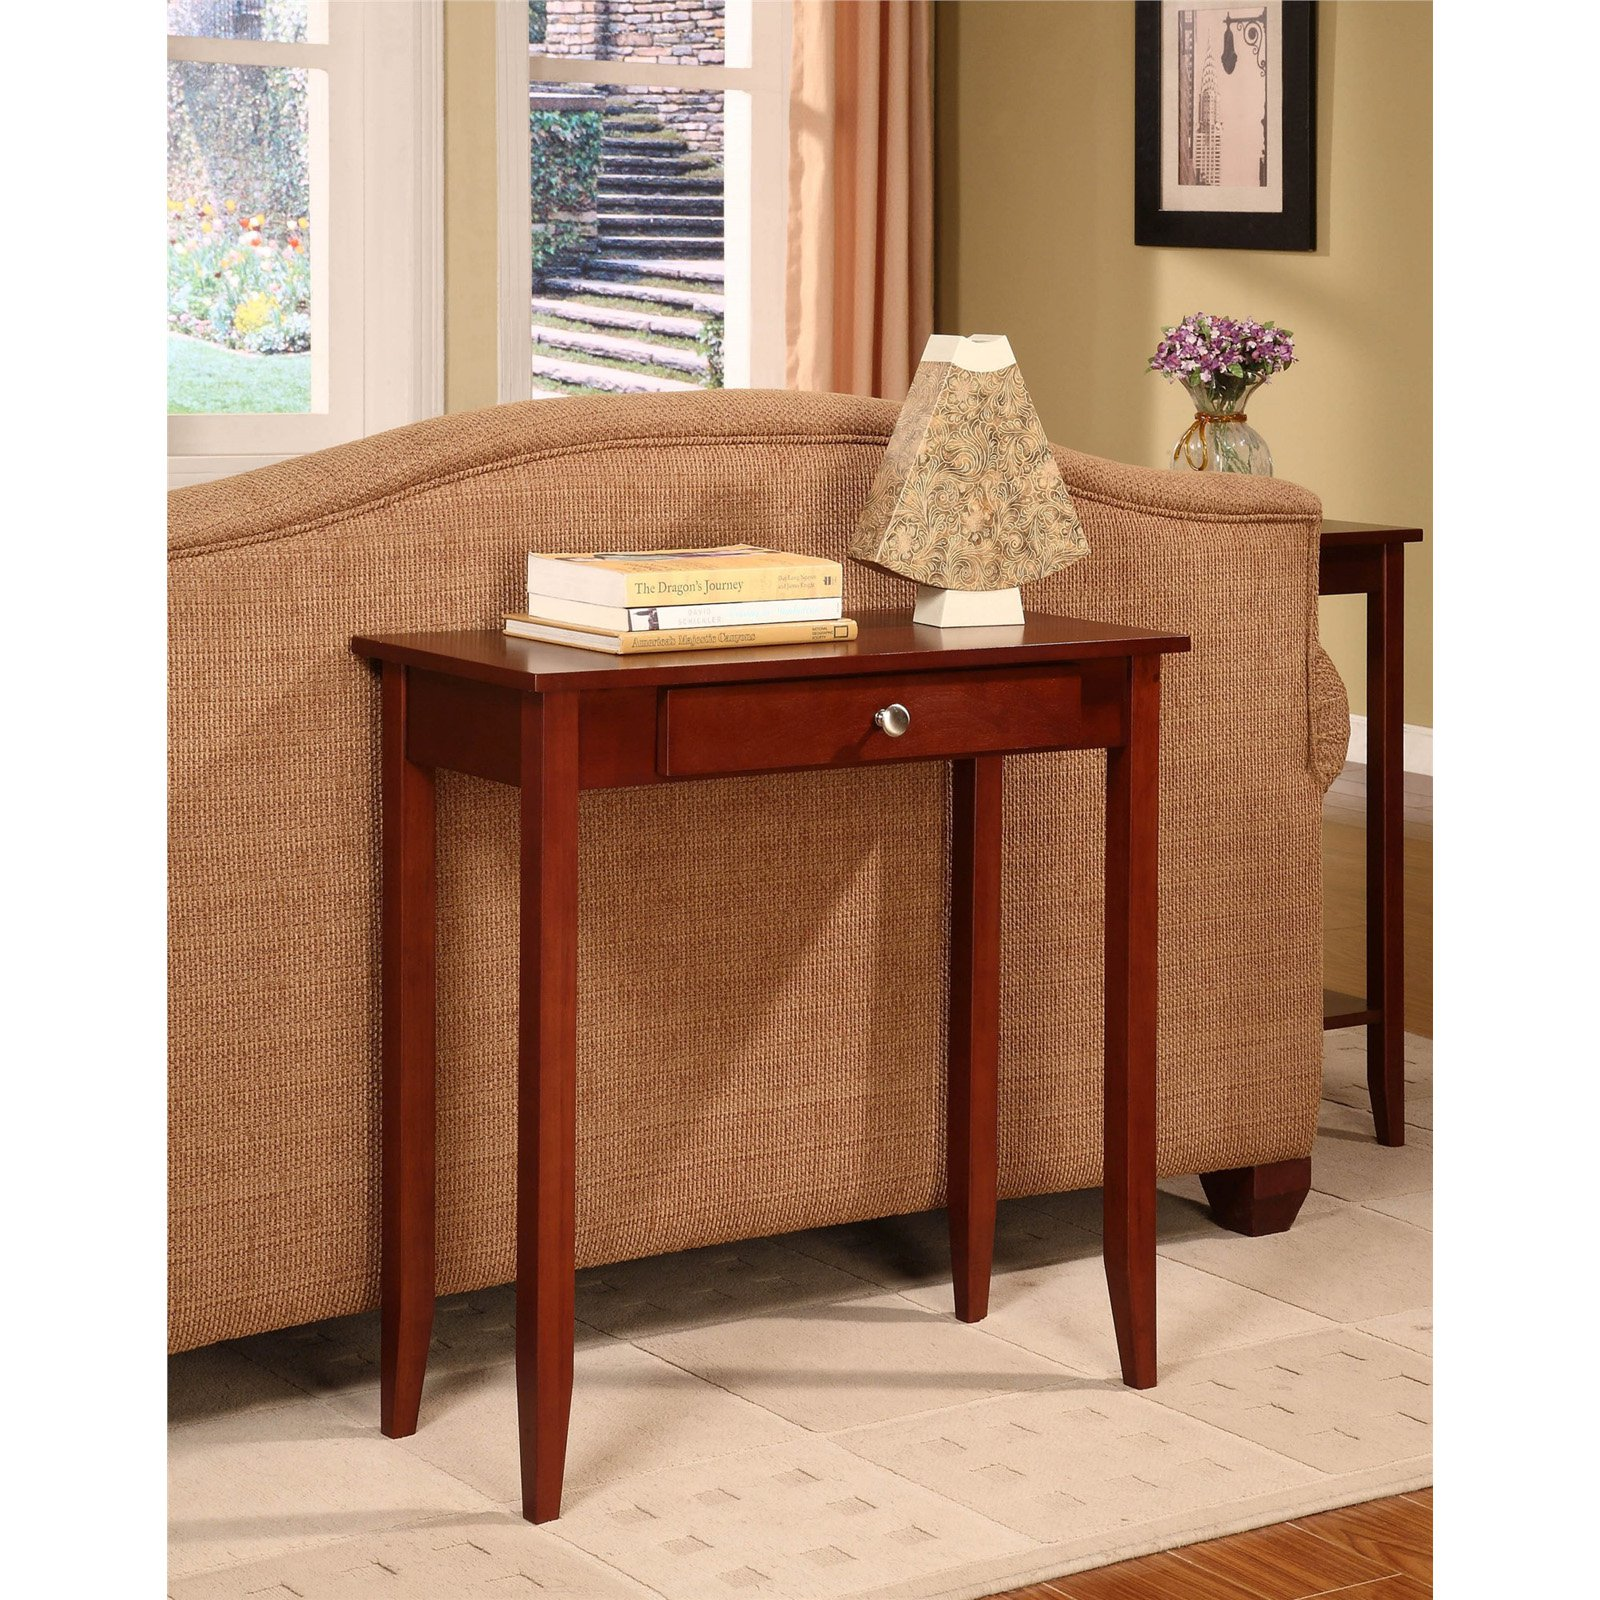 DHP Rosewood Tall Small Space Console Table, Coffee Brown